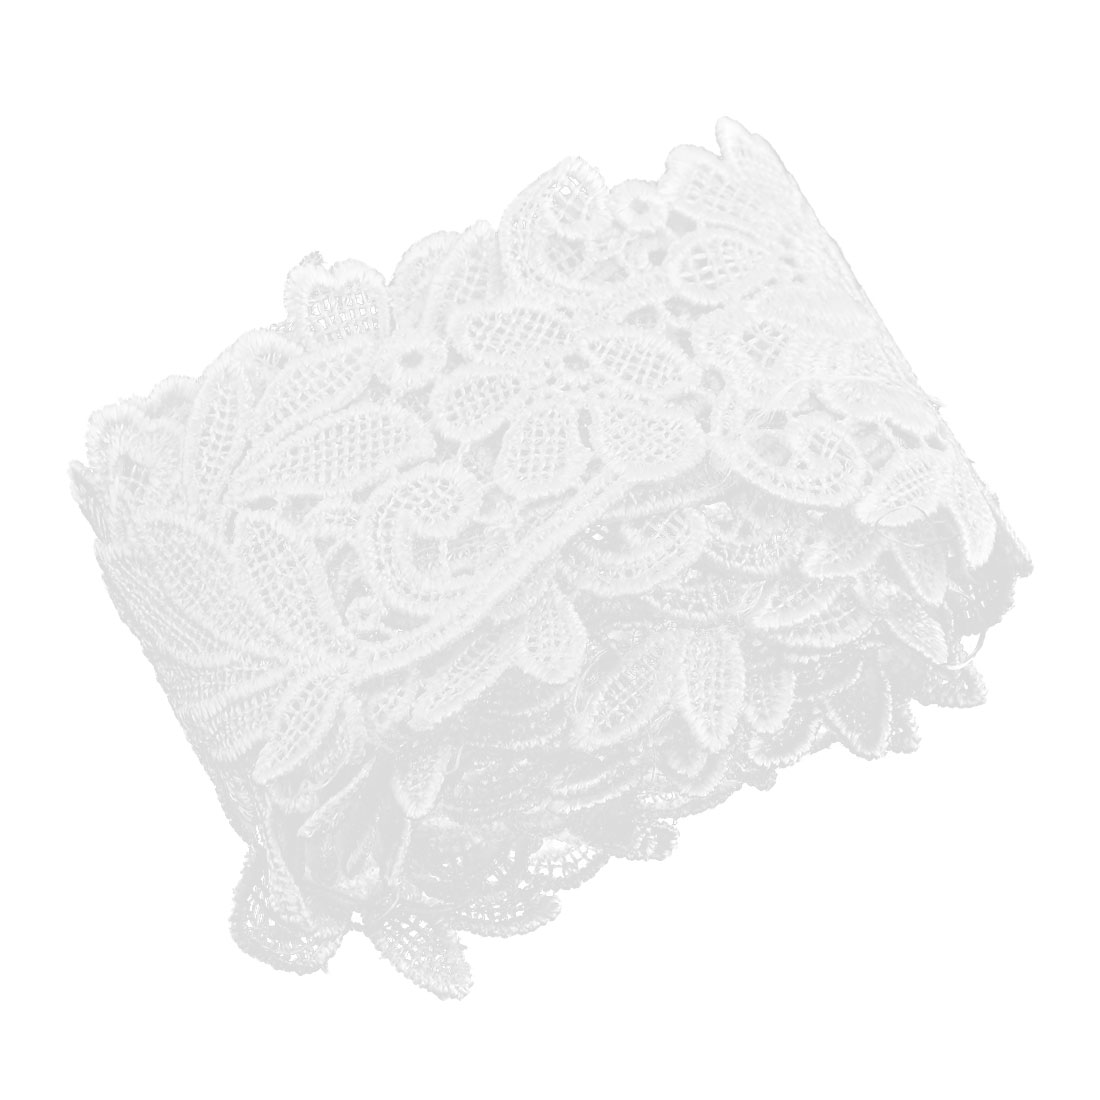 Home Polyester Fower Design Sewing Lace Trim Embroidered White 2 Inches Width